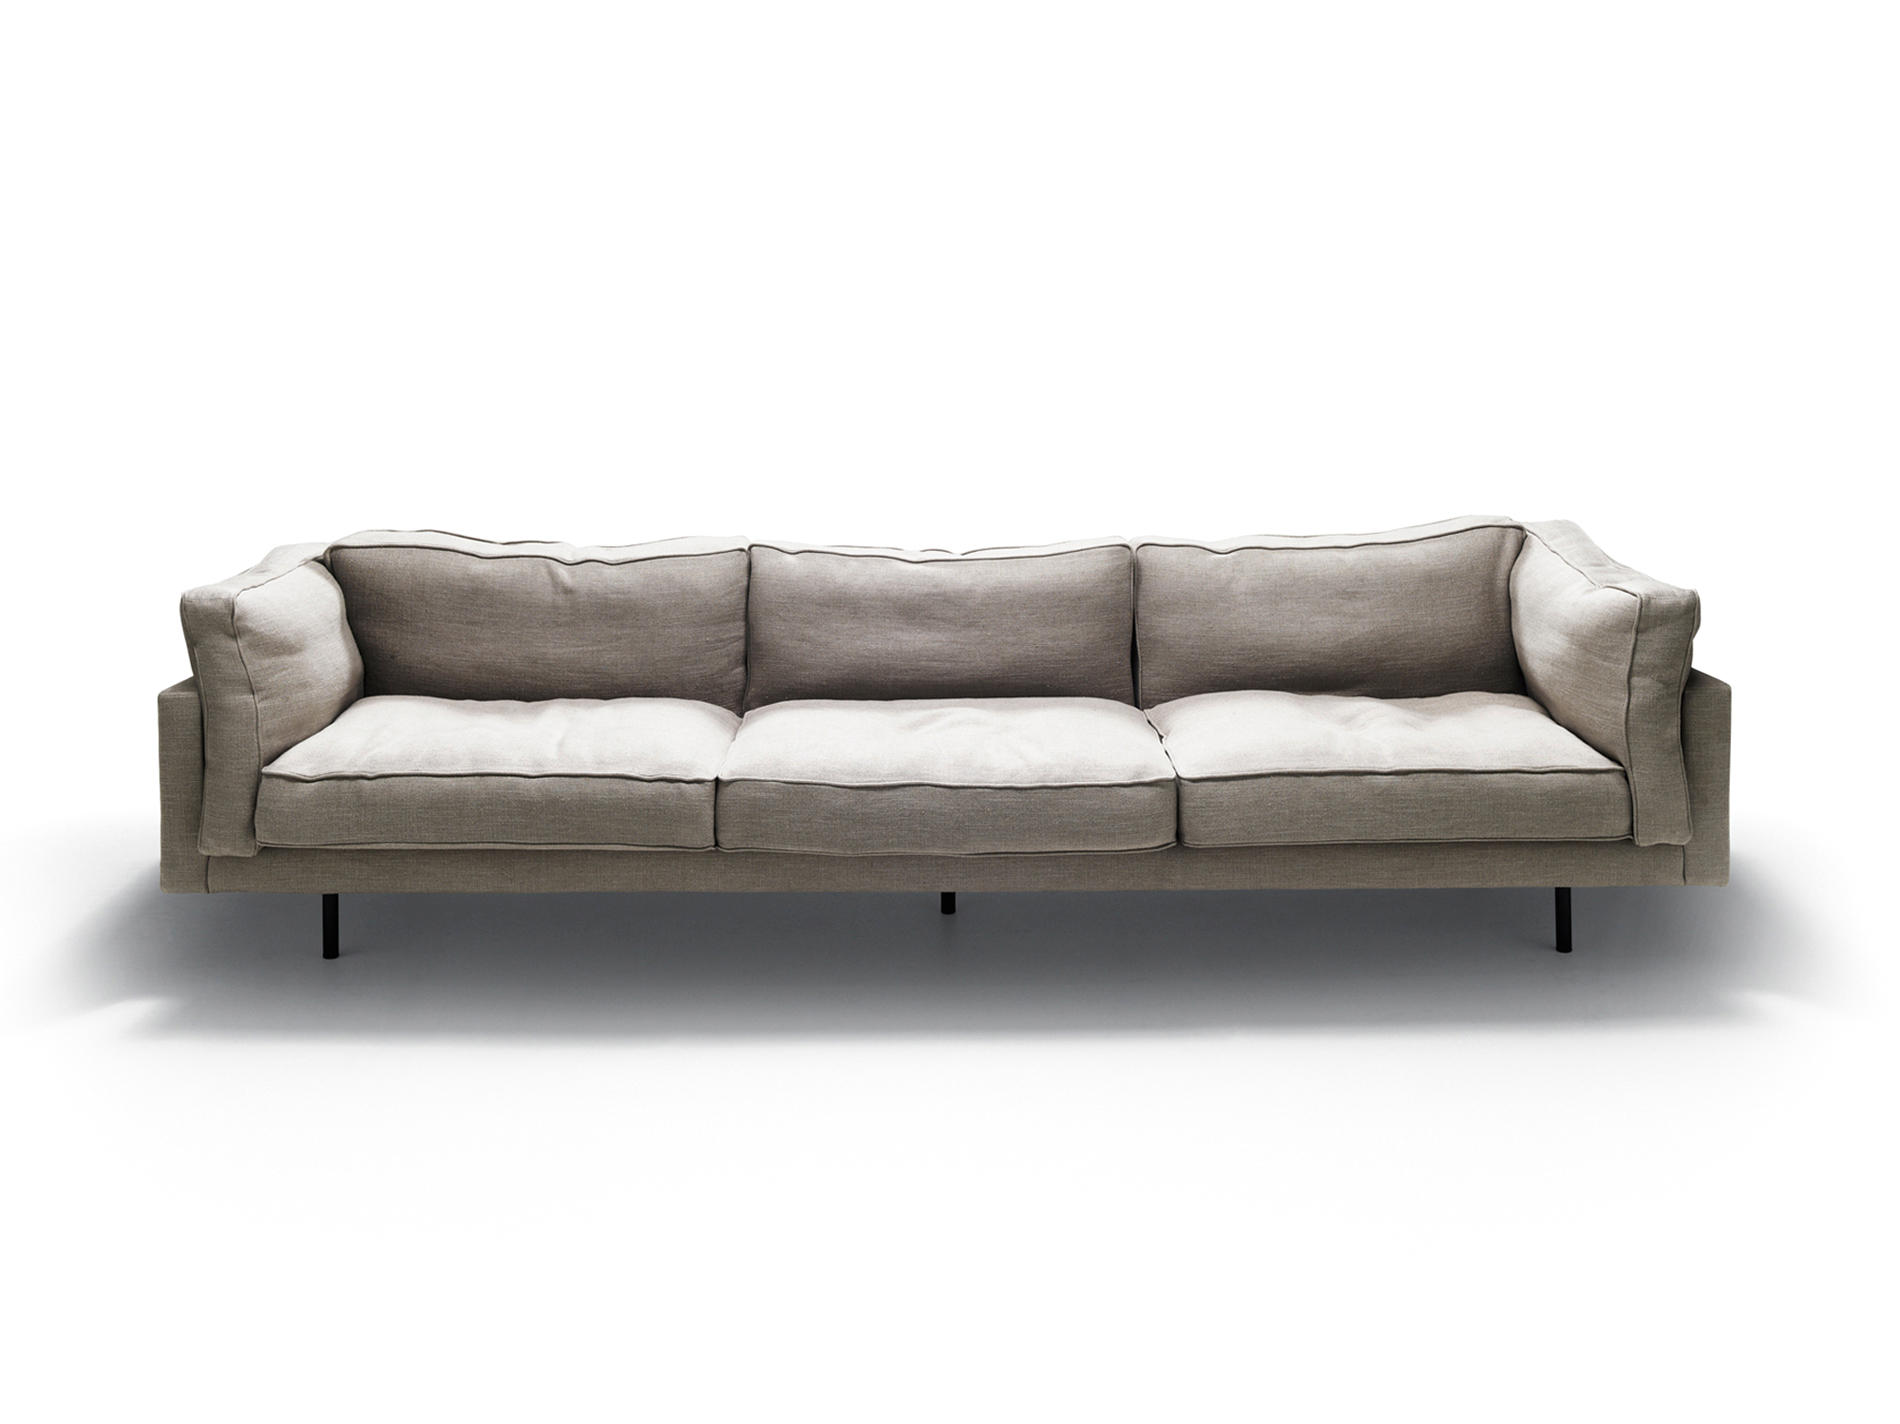 SQUARE 16 - Sofas from De Padova | Architonic